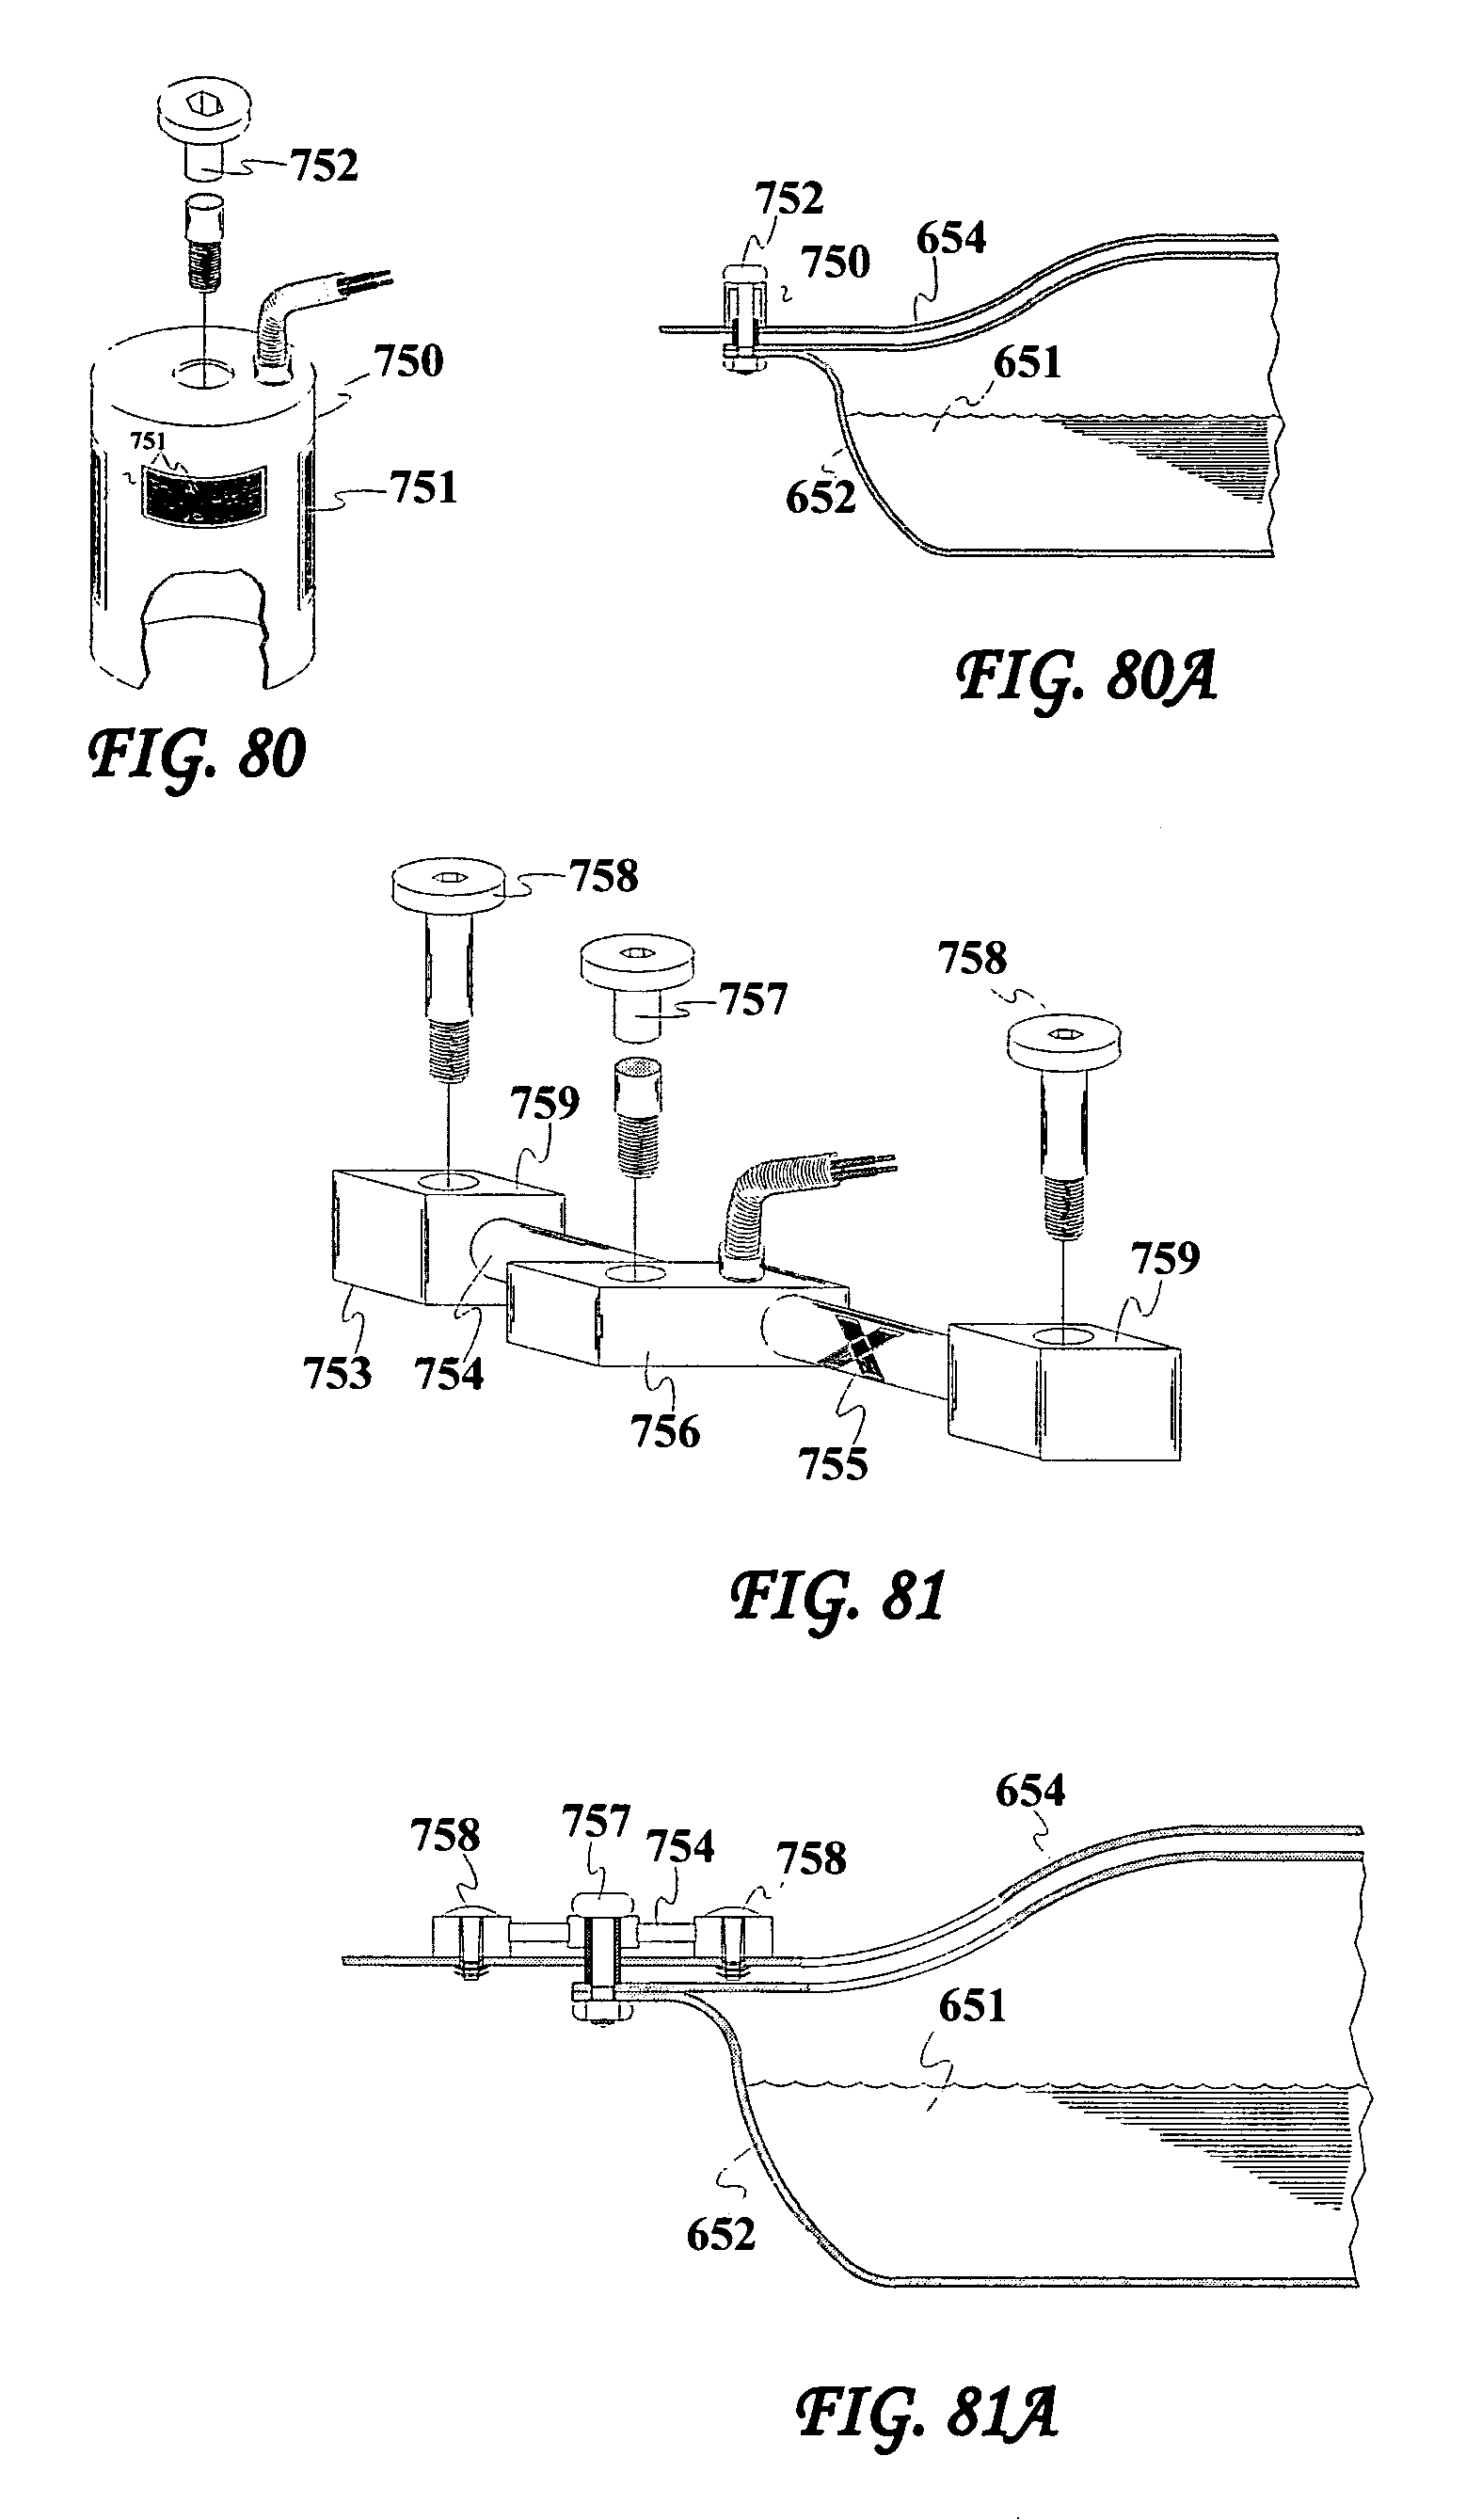 Patent Us 7103460 B1 High Potential Circuits 3 6 Spark Arresting For Reed Relays Images